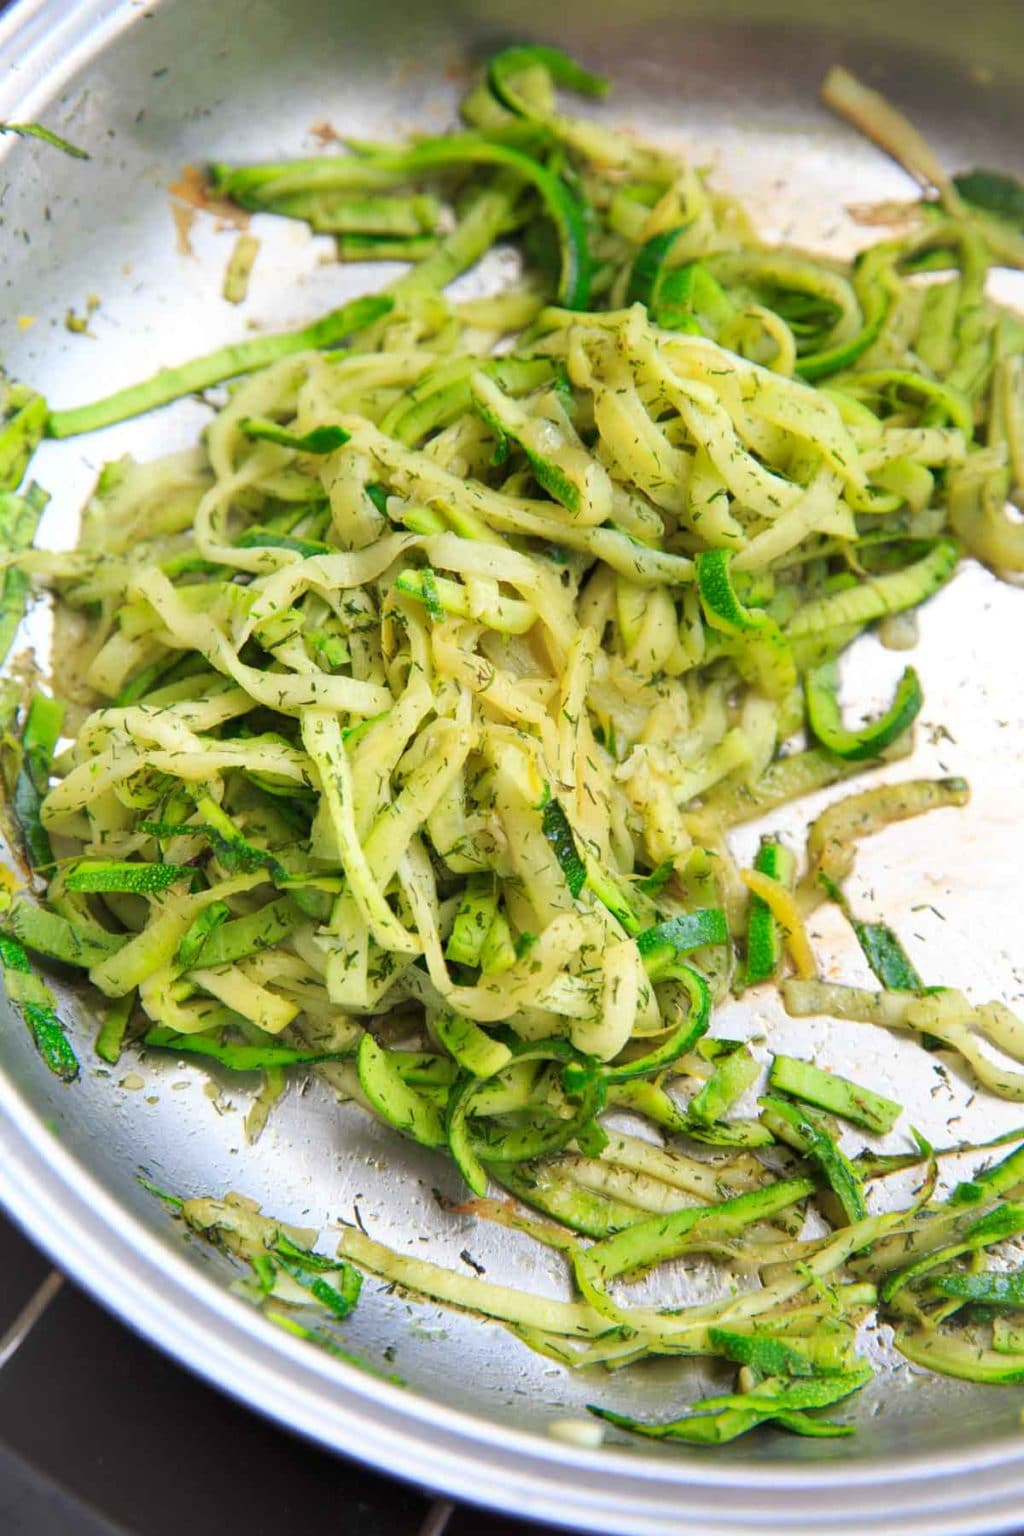 Cooked spiralized zucchini with dill